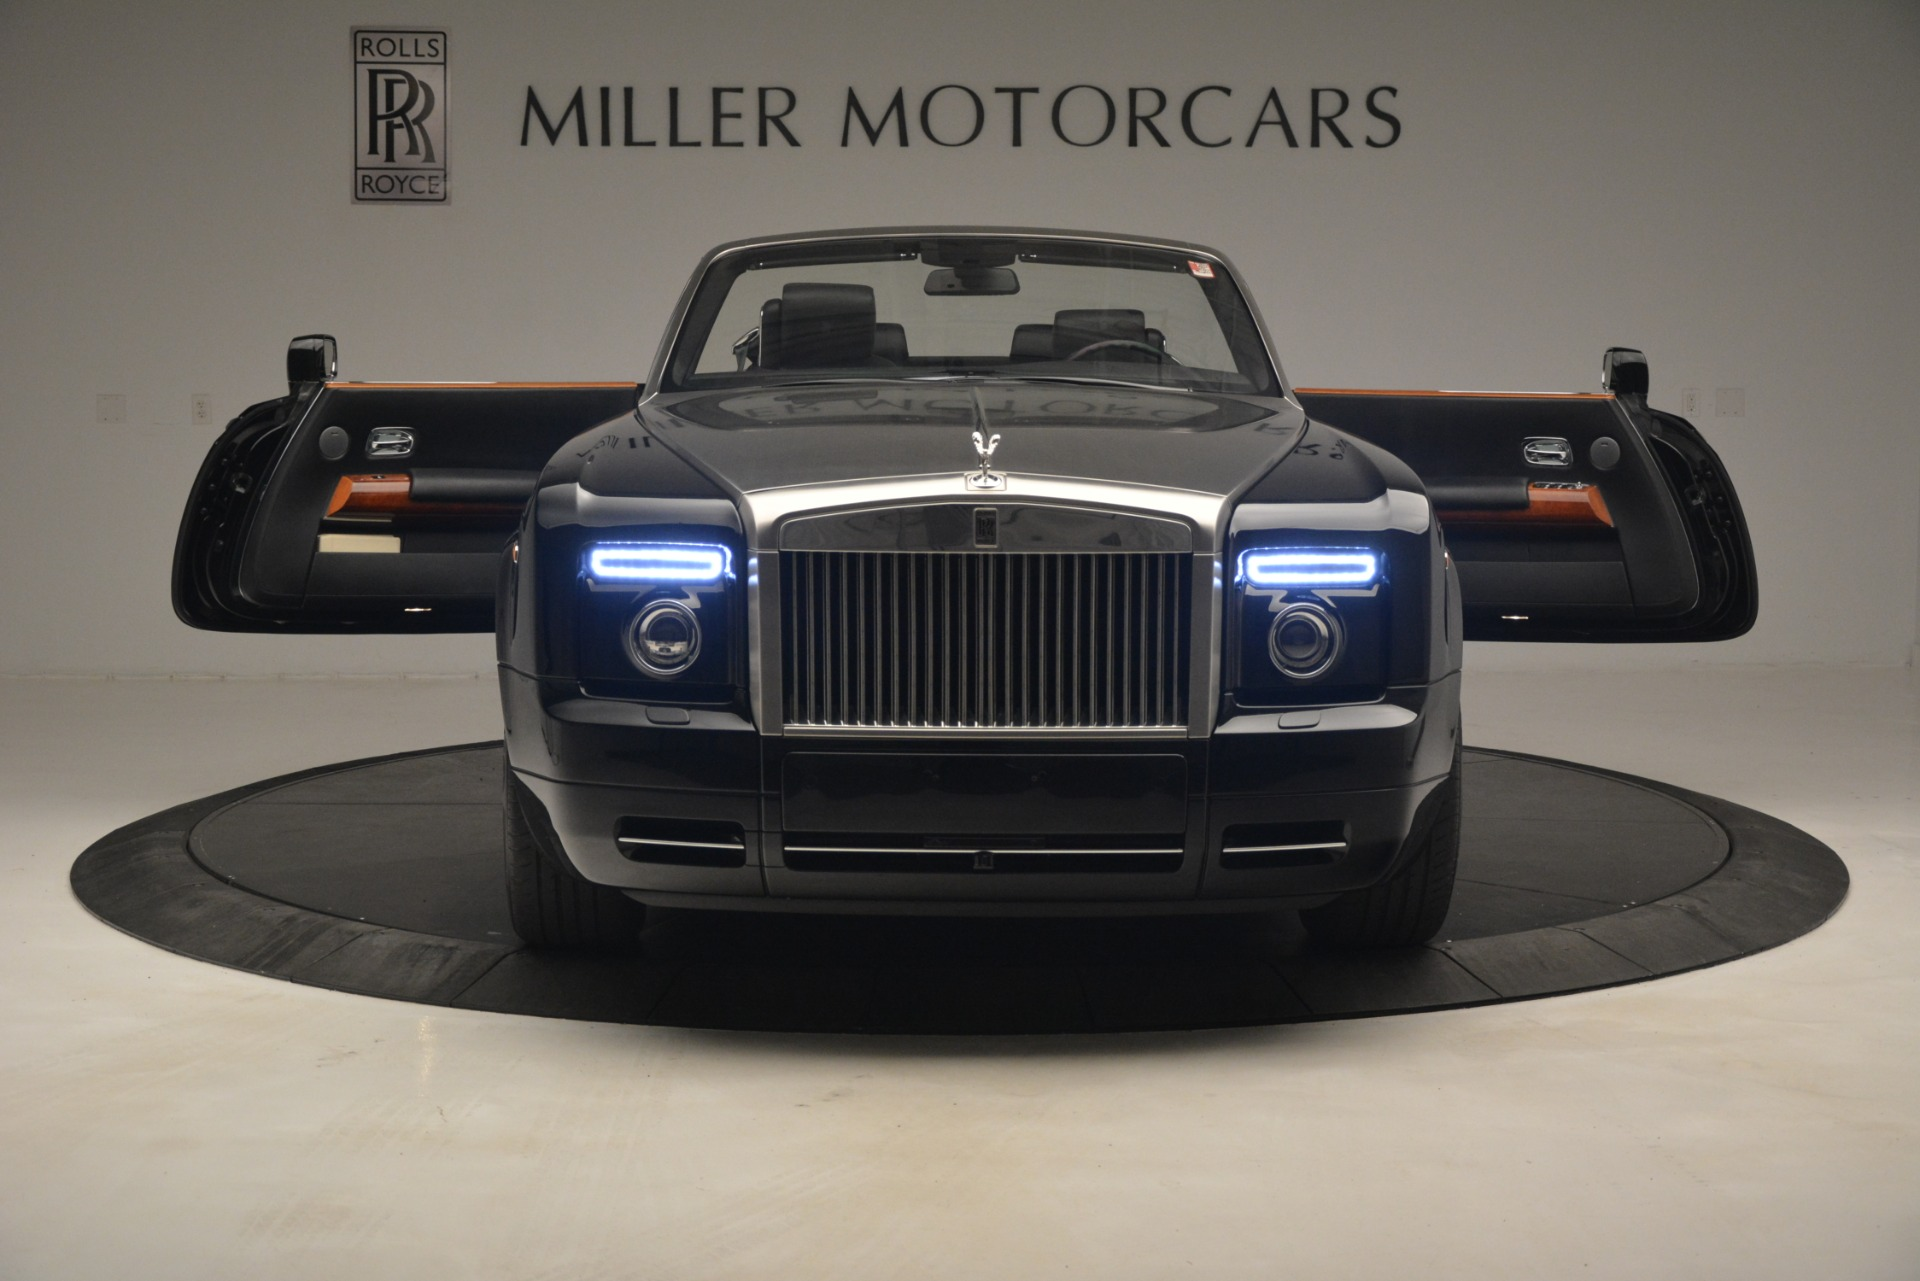 Used 2008 Rolls-Royce Phantom Drophead Coupe  For Sale In Greenwich, CT 3000_p18